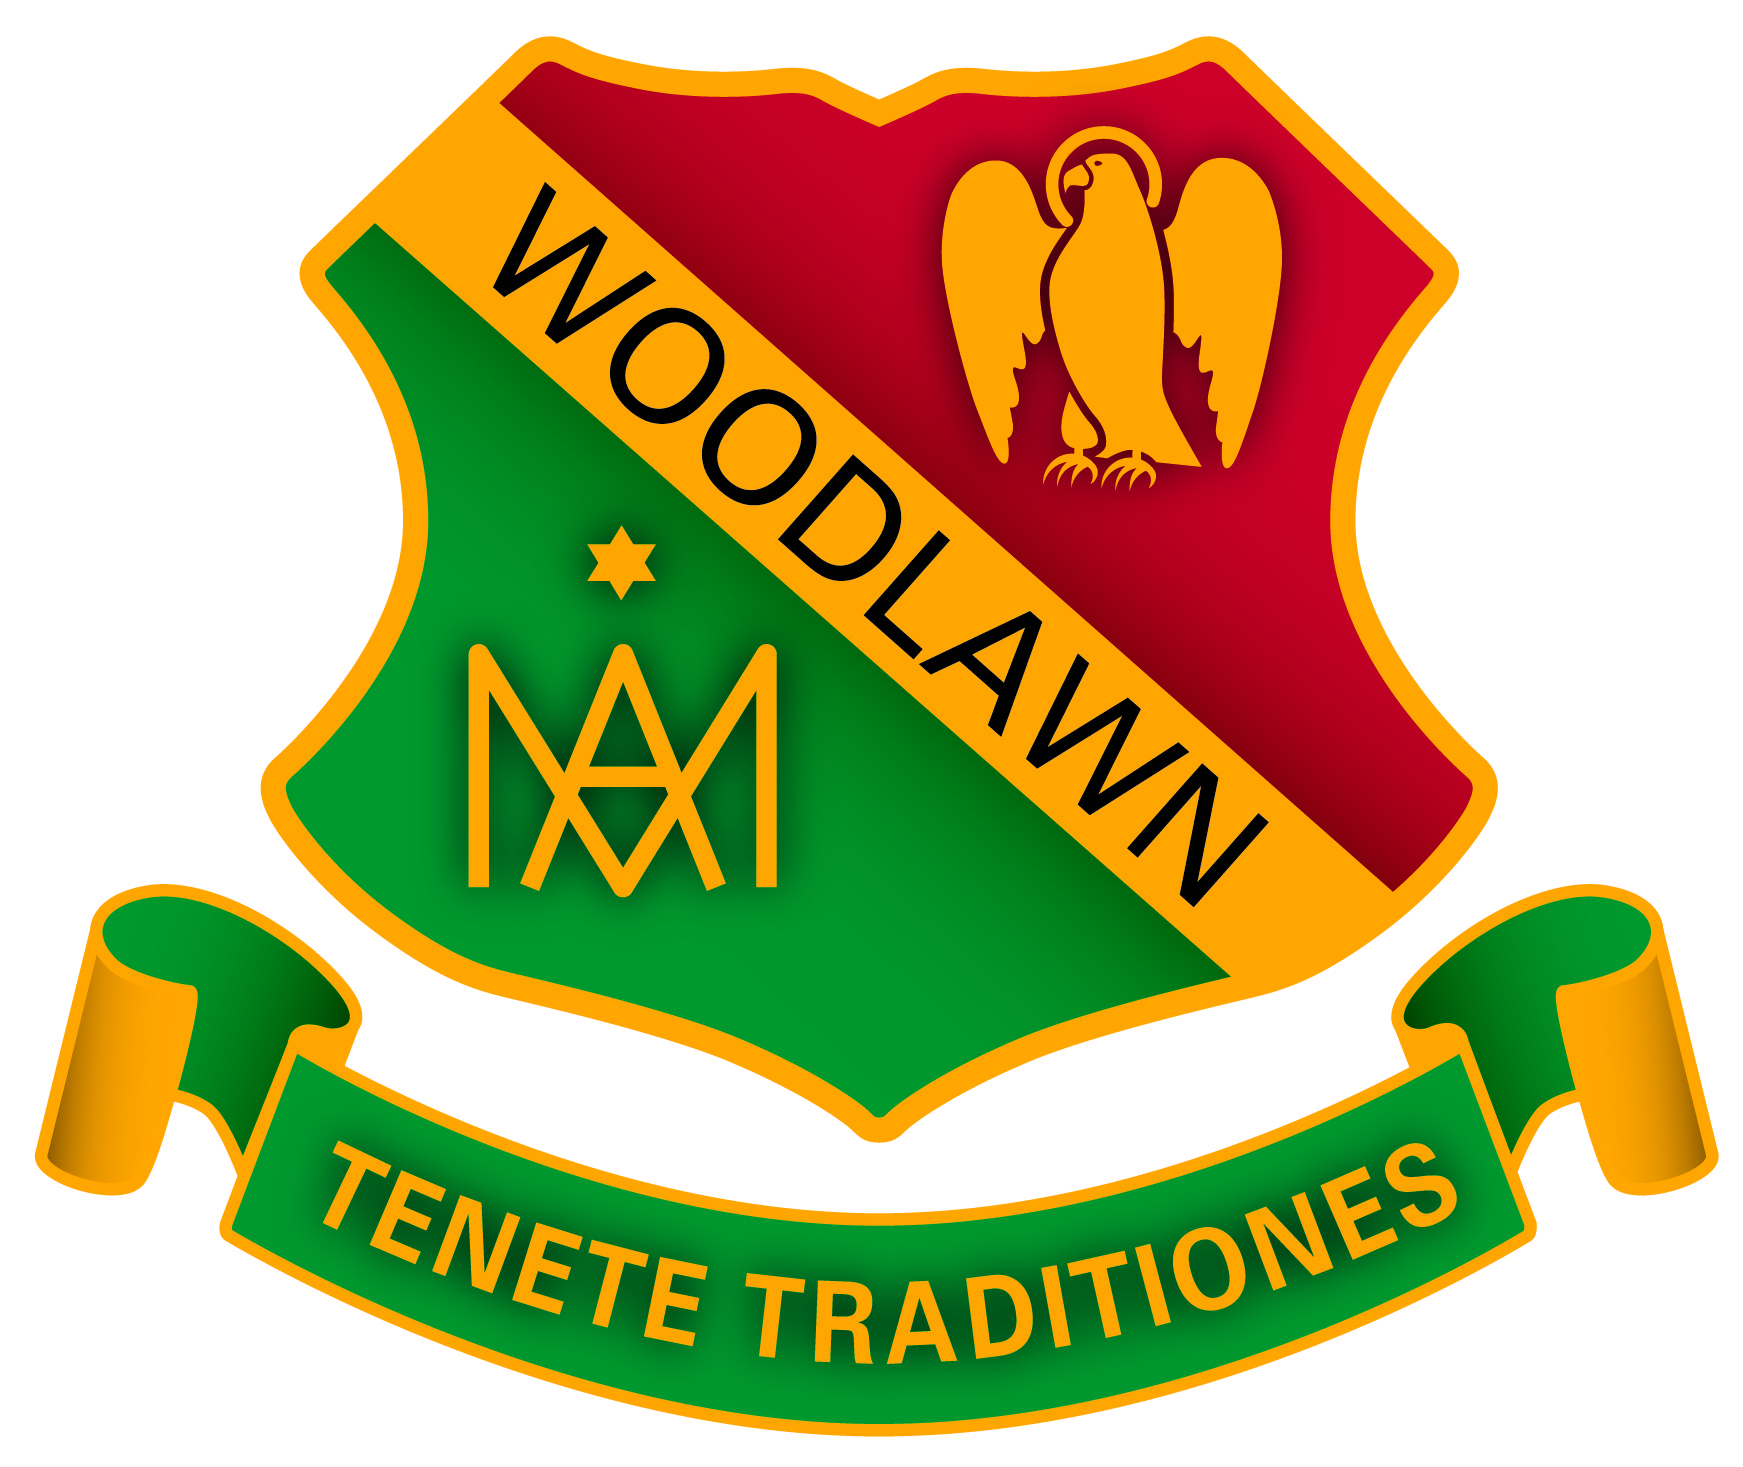 Woodlawn Crest